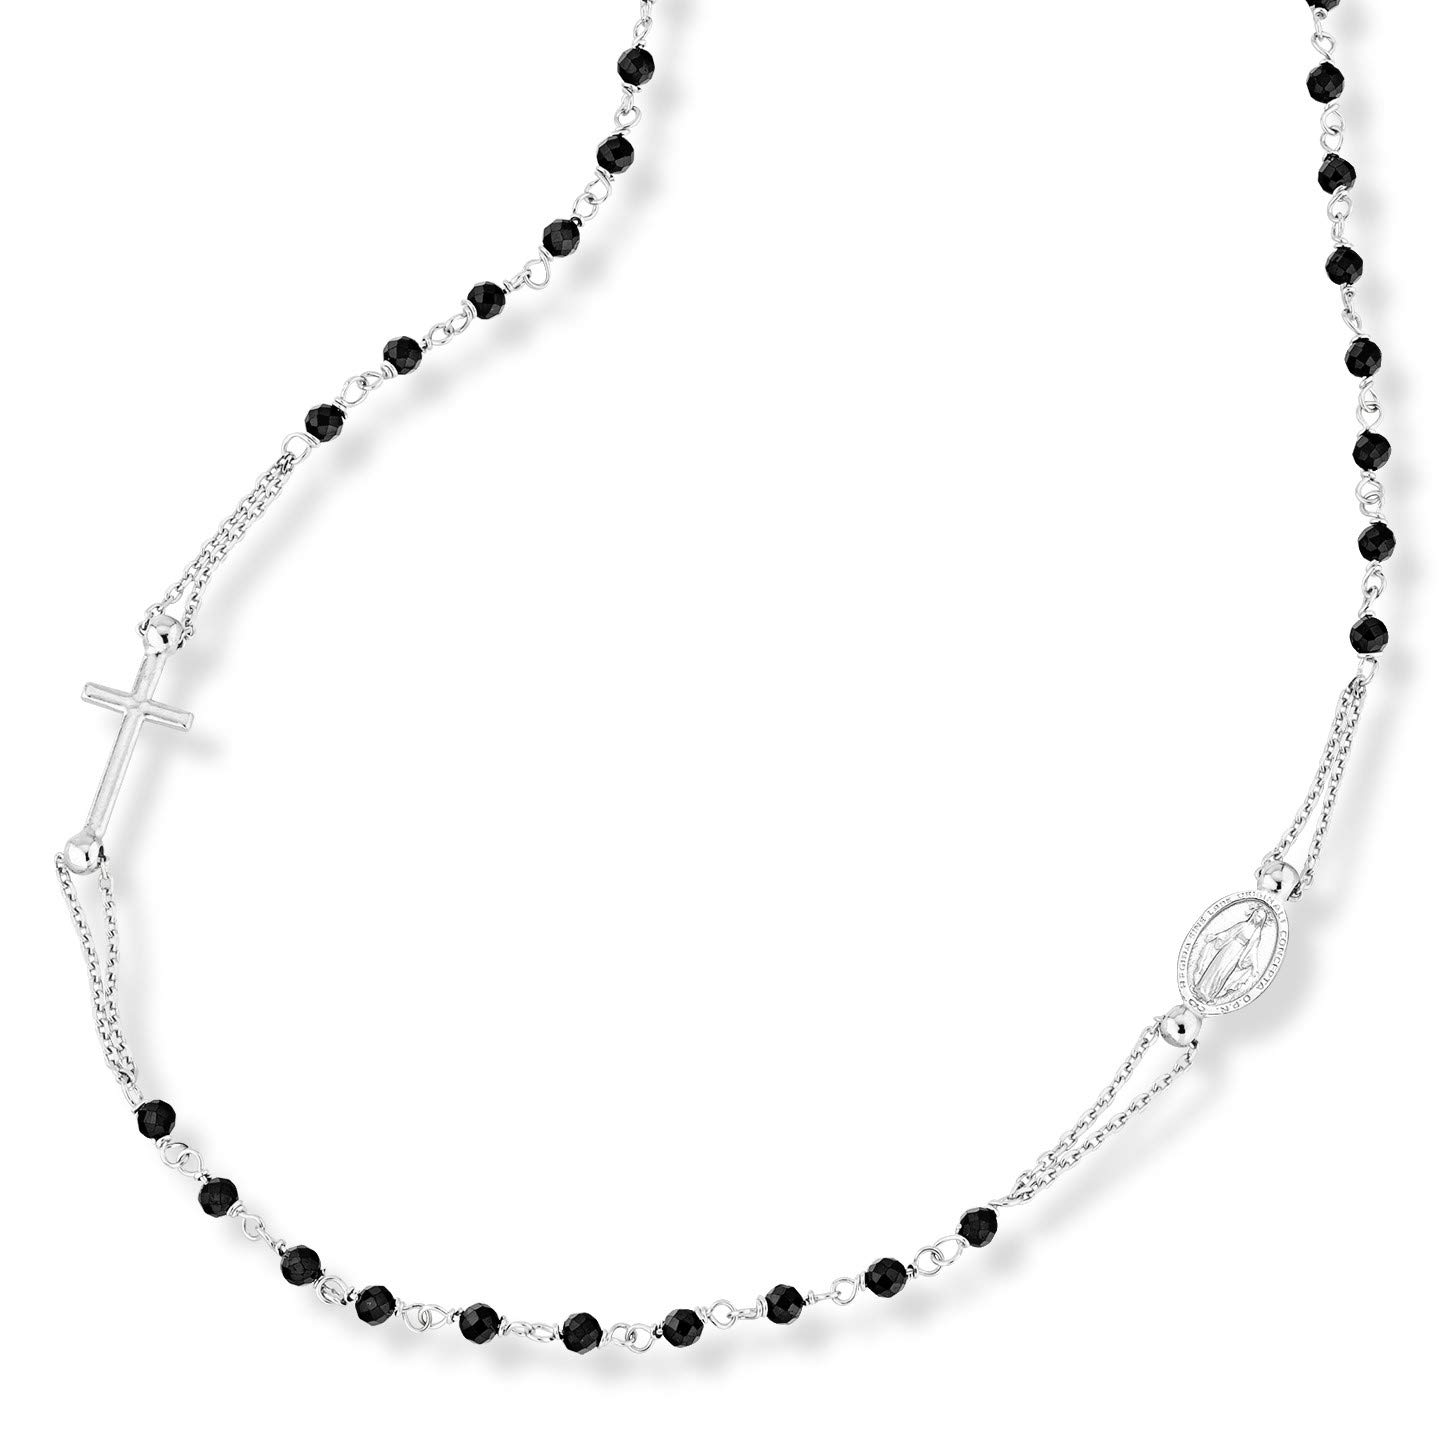 MiaBella 925 Sterling Silver Italian Handmade Black Spinel Rosary Beads Sideways Cross Necklace for Women Teen Girls, Beaded Necklace 18, 20 Inch Chain Made in Italy (18) by MiaBella